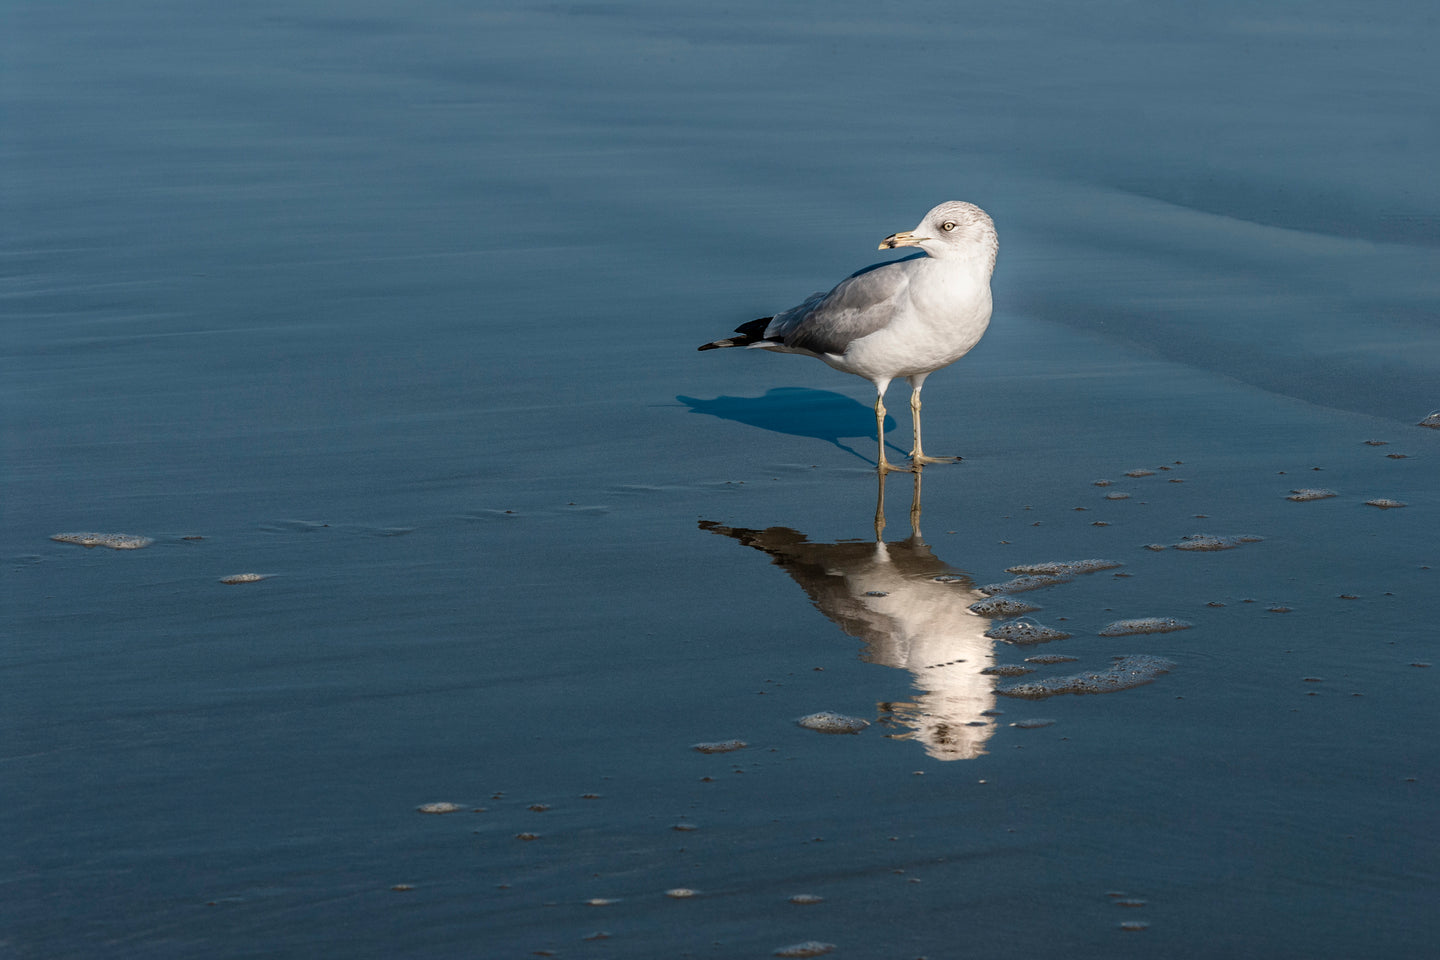 Reflection of a Bird